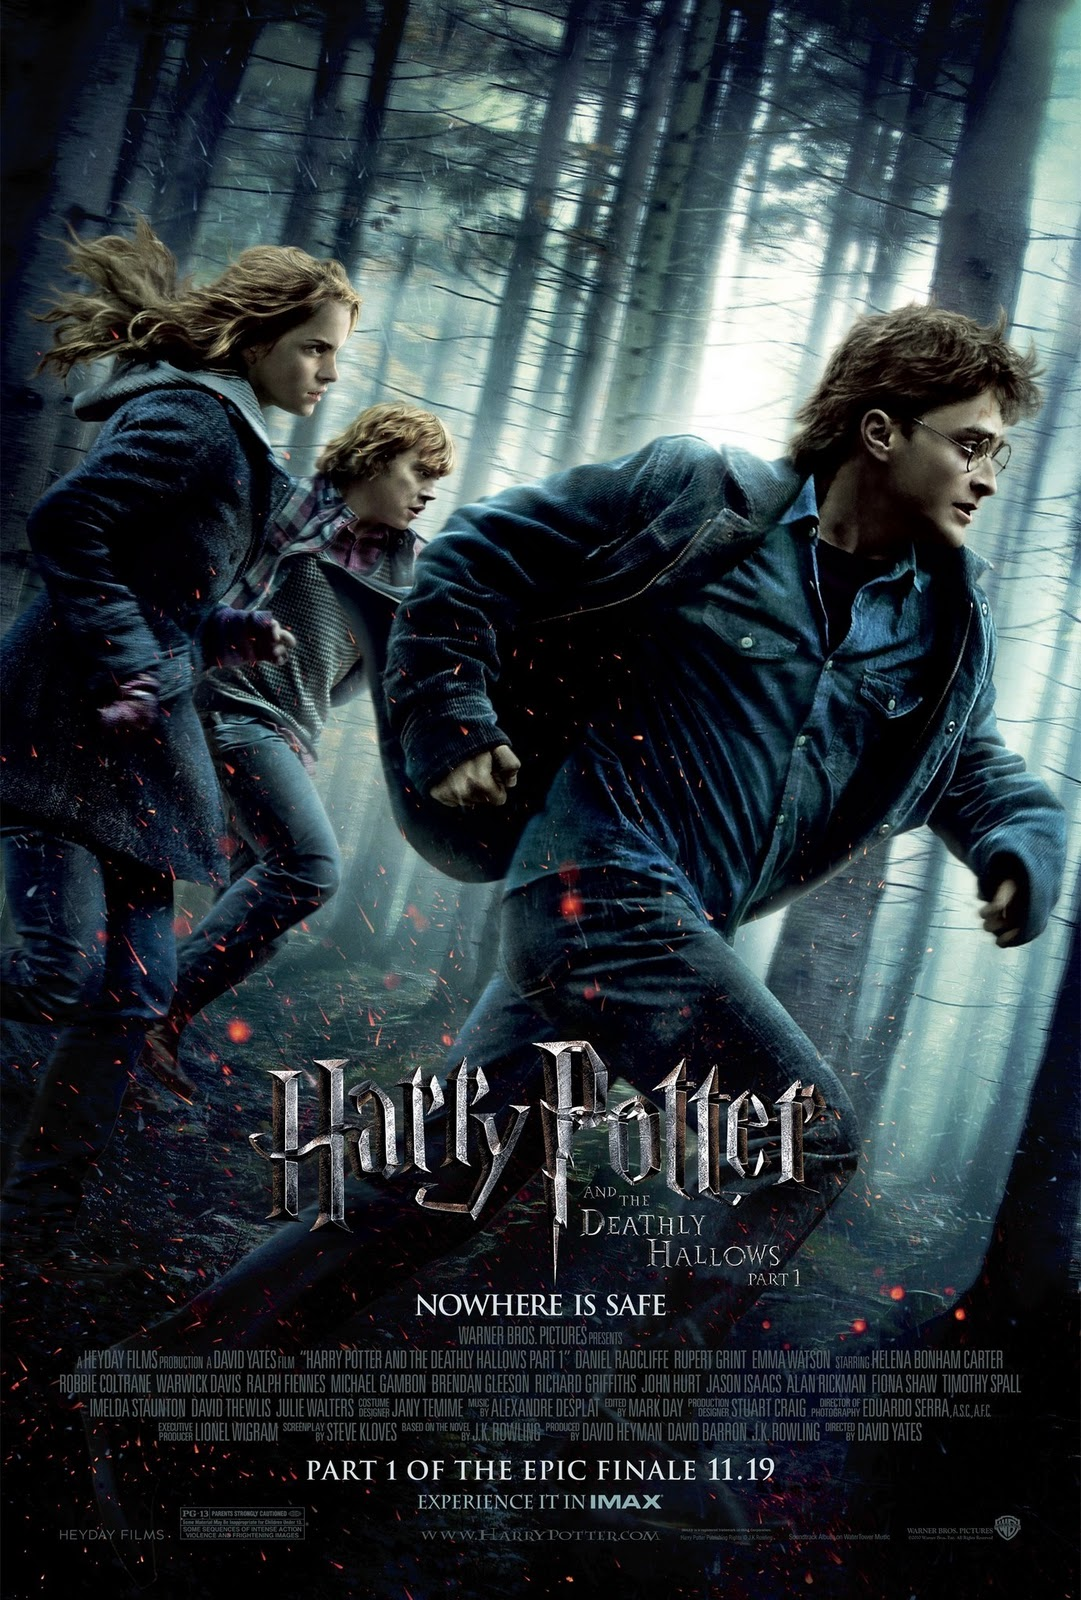 harry_potter_and_the_deathly_hallows_part_1_movie_poster2.jpg